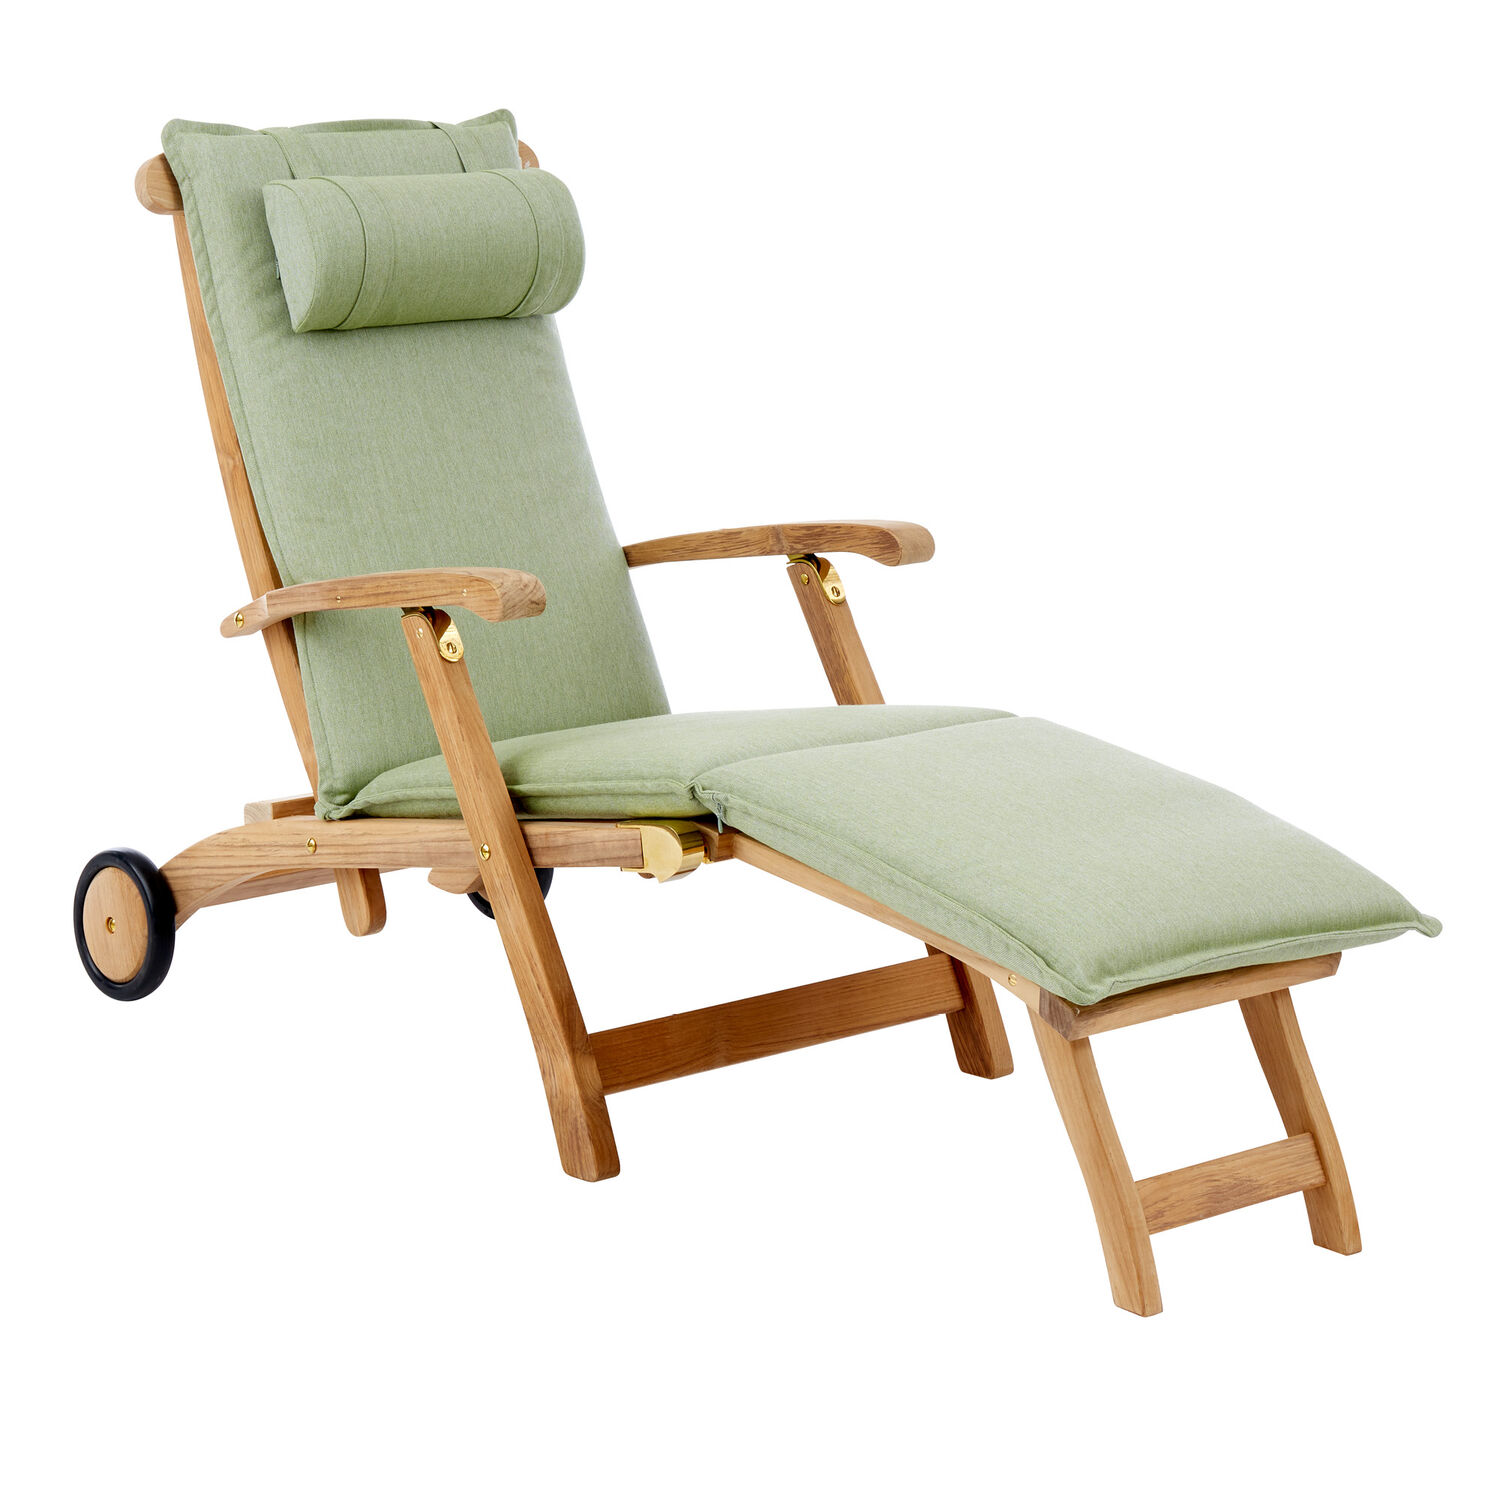 Auflage Deckchair Auflage Royal Princess Deck Chair Dessin